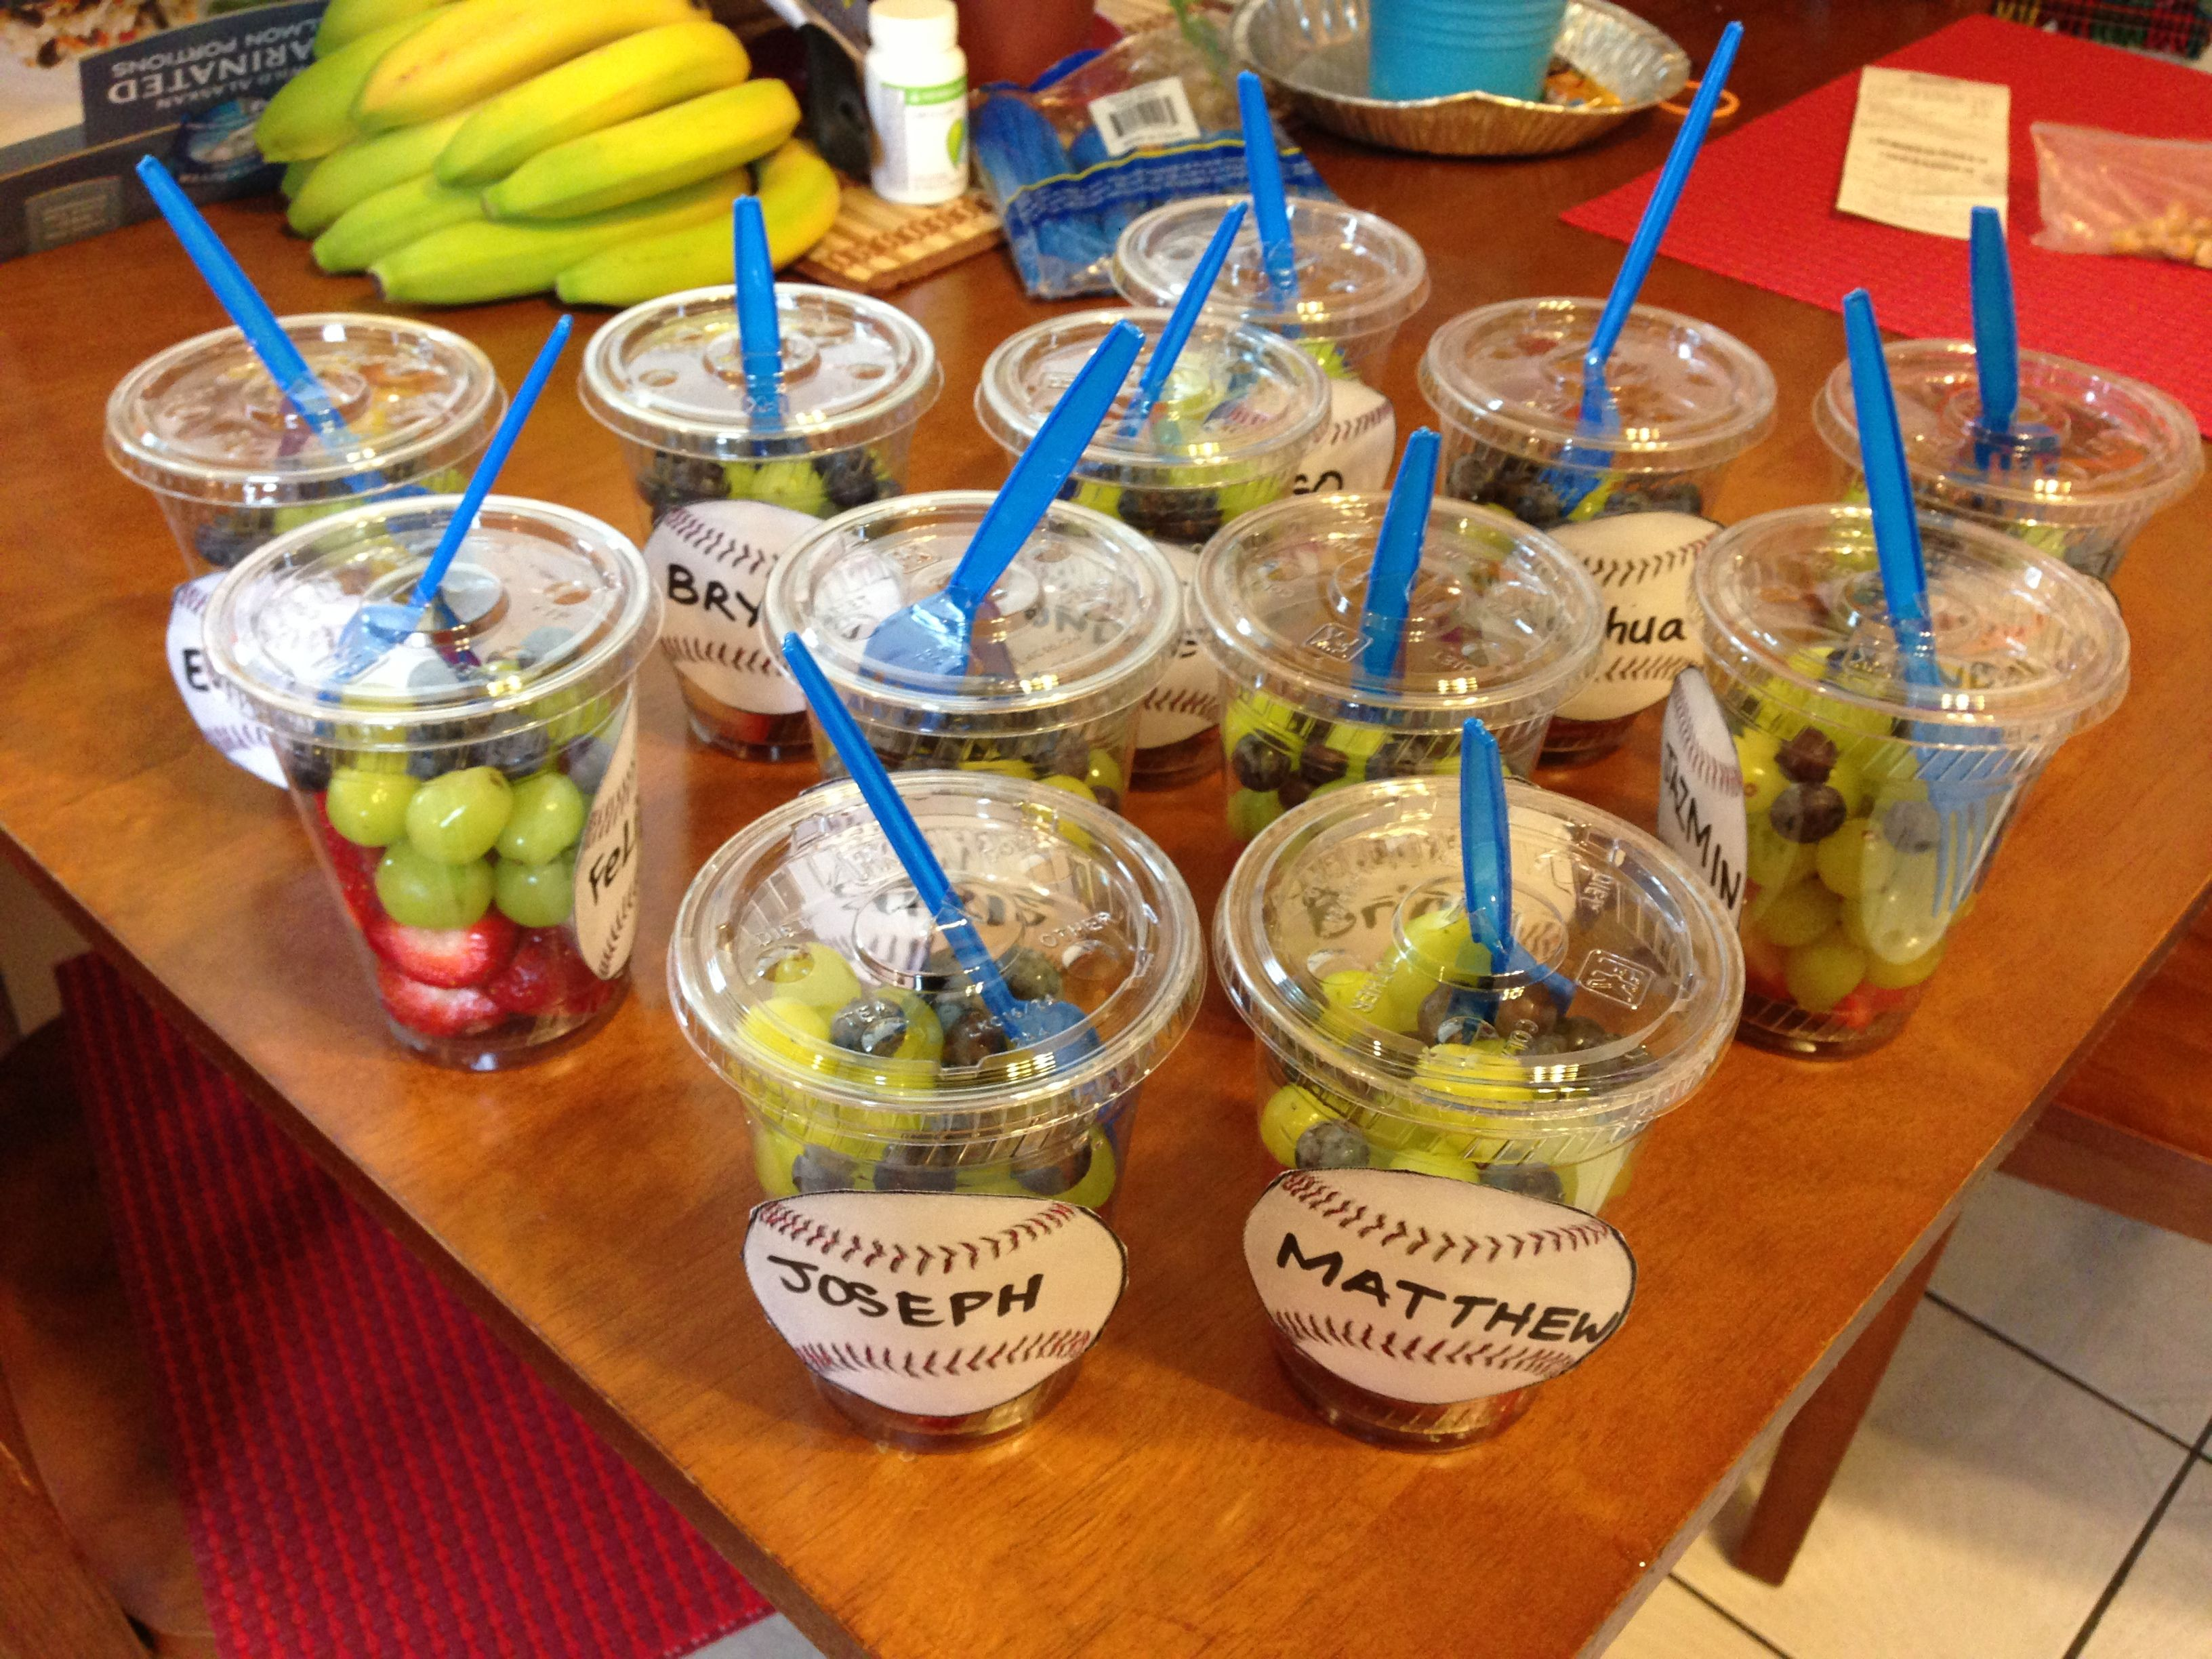 baseball themed fruit cups for snacks after a game healthy and